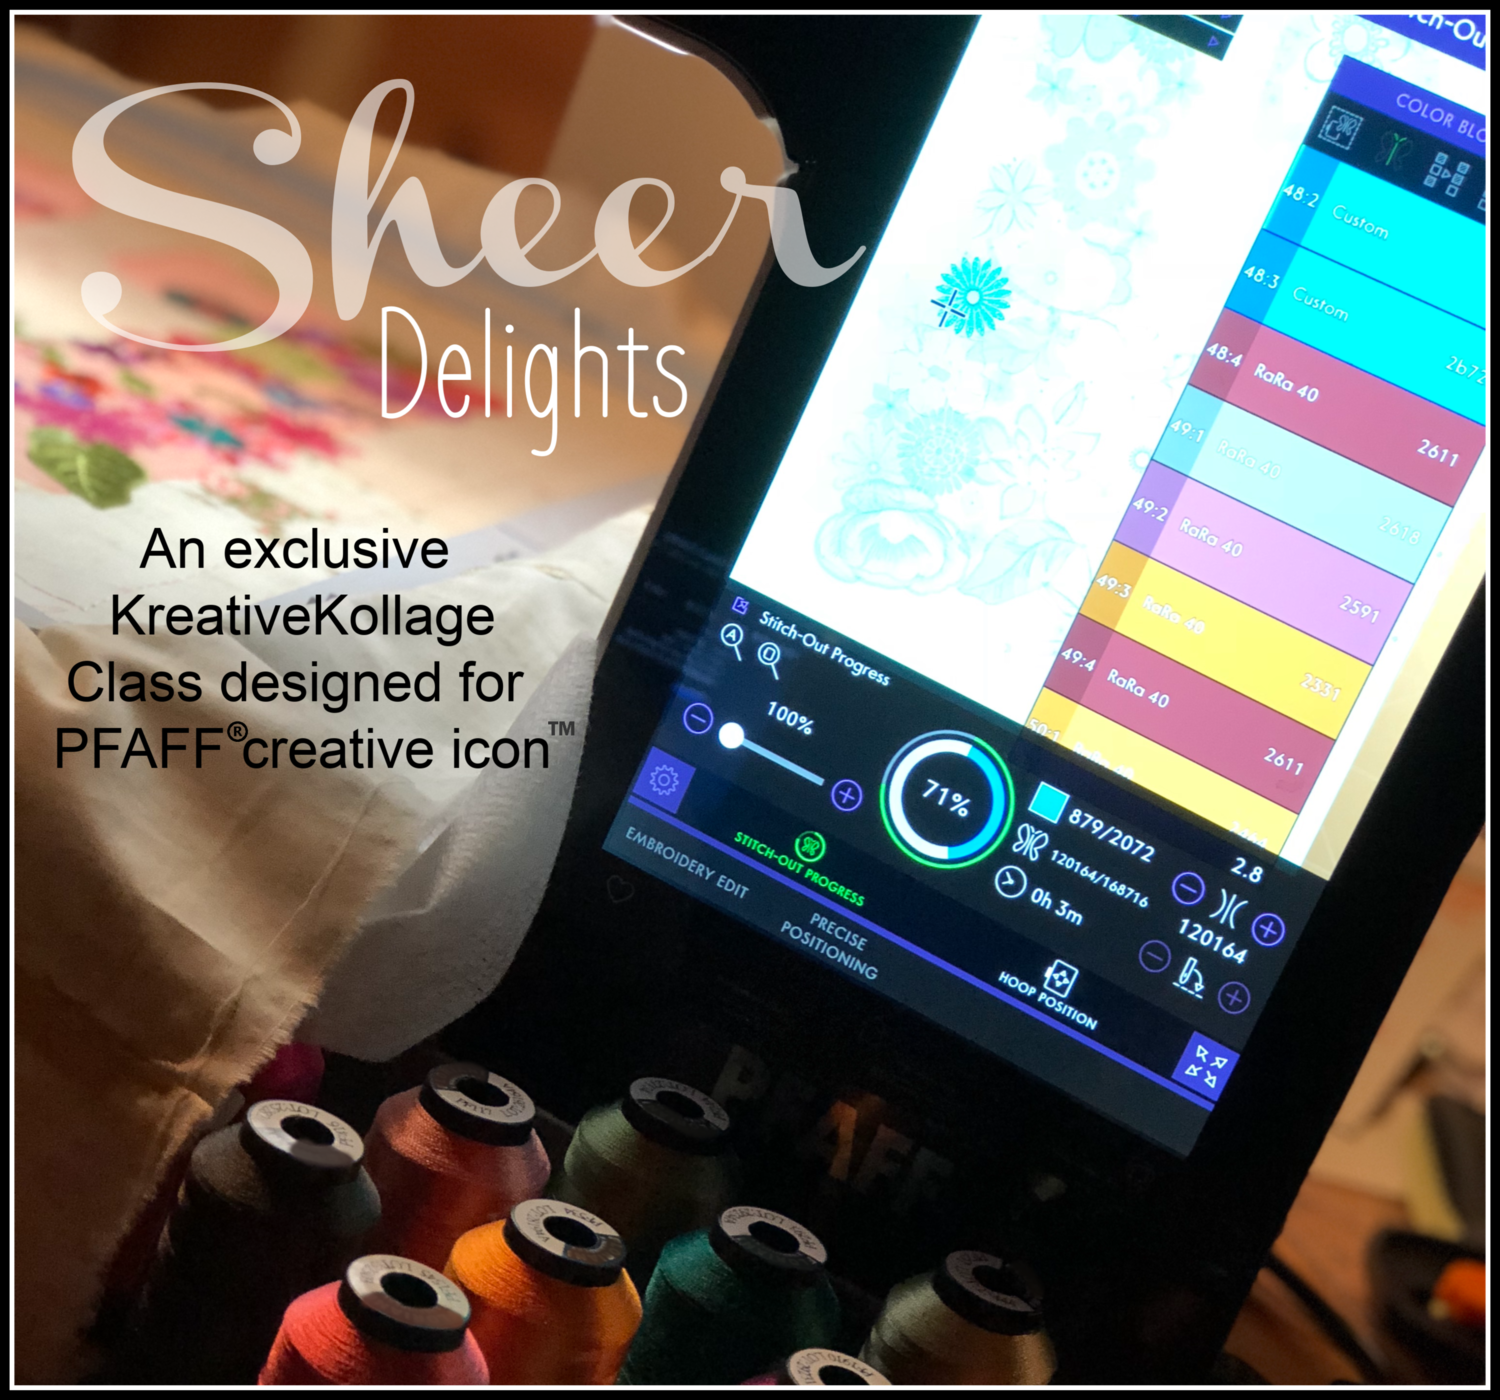 Sheer Delights Workshop